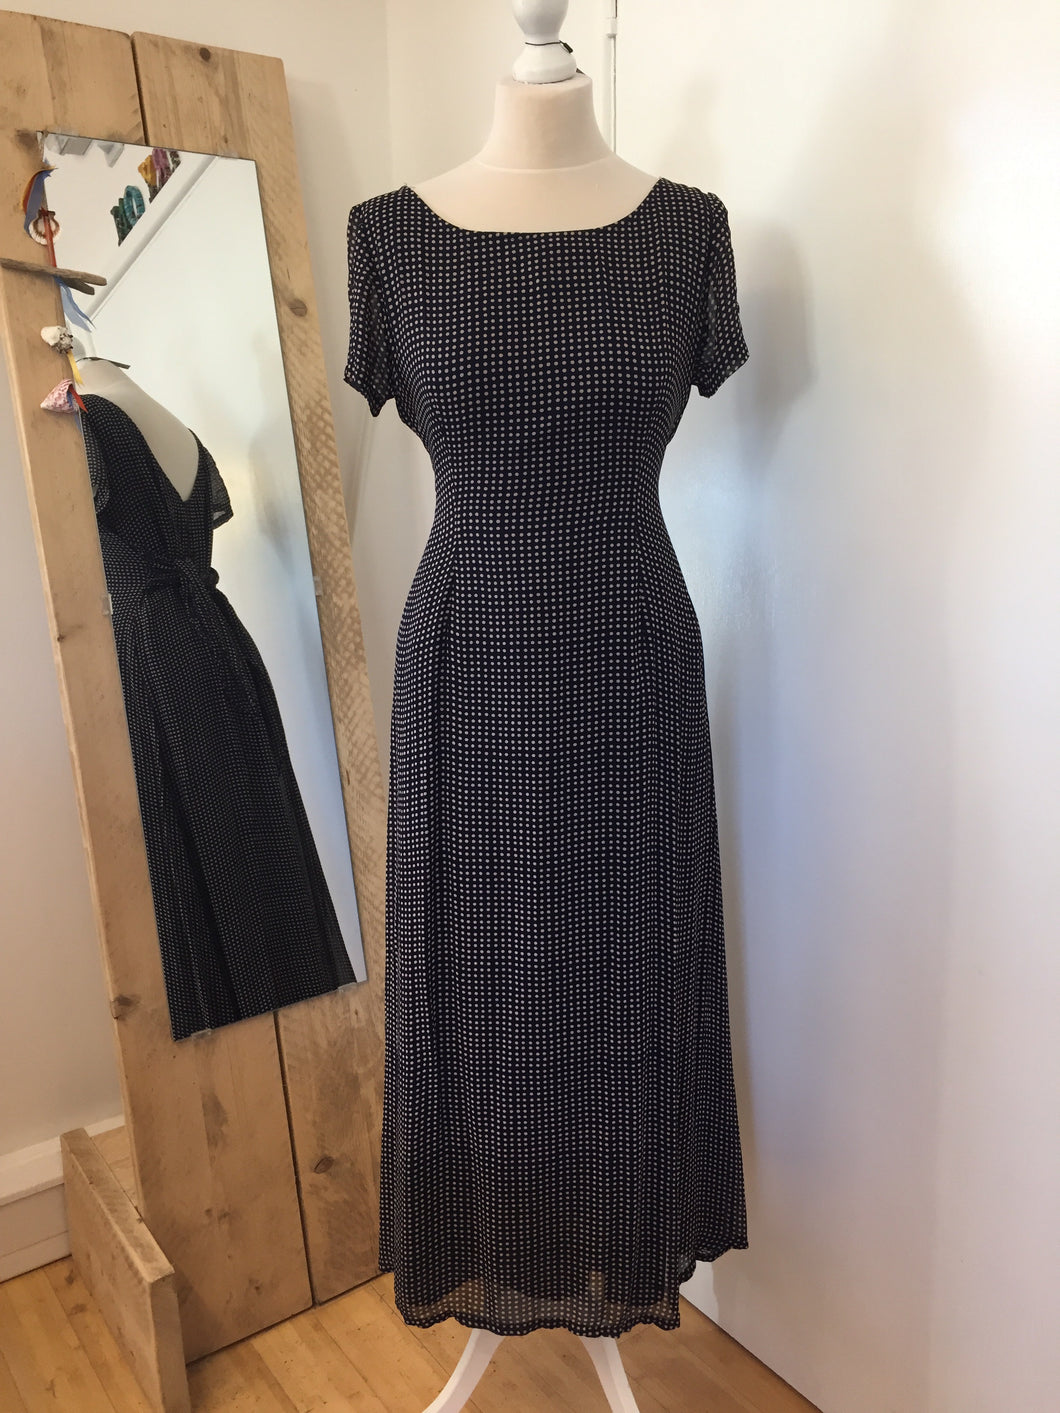 Monsoon Navy Spotted Midi Tea Dress Size 14